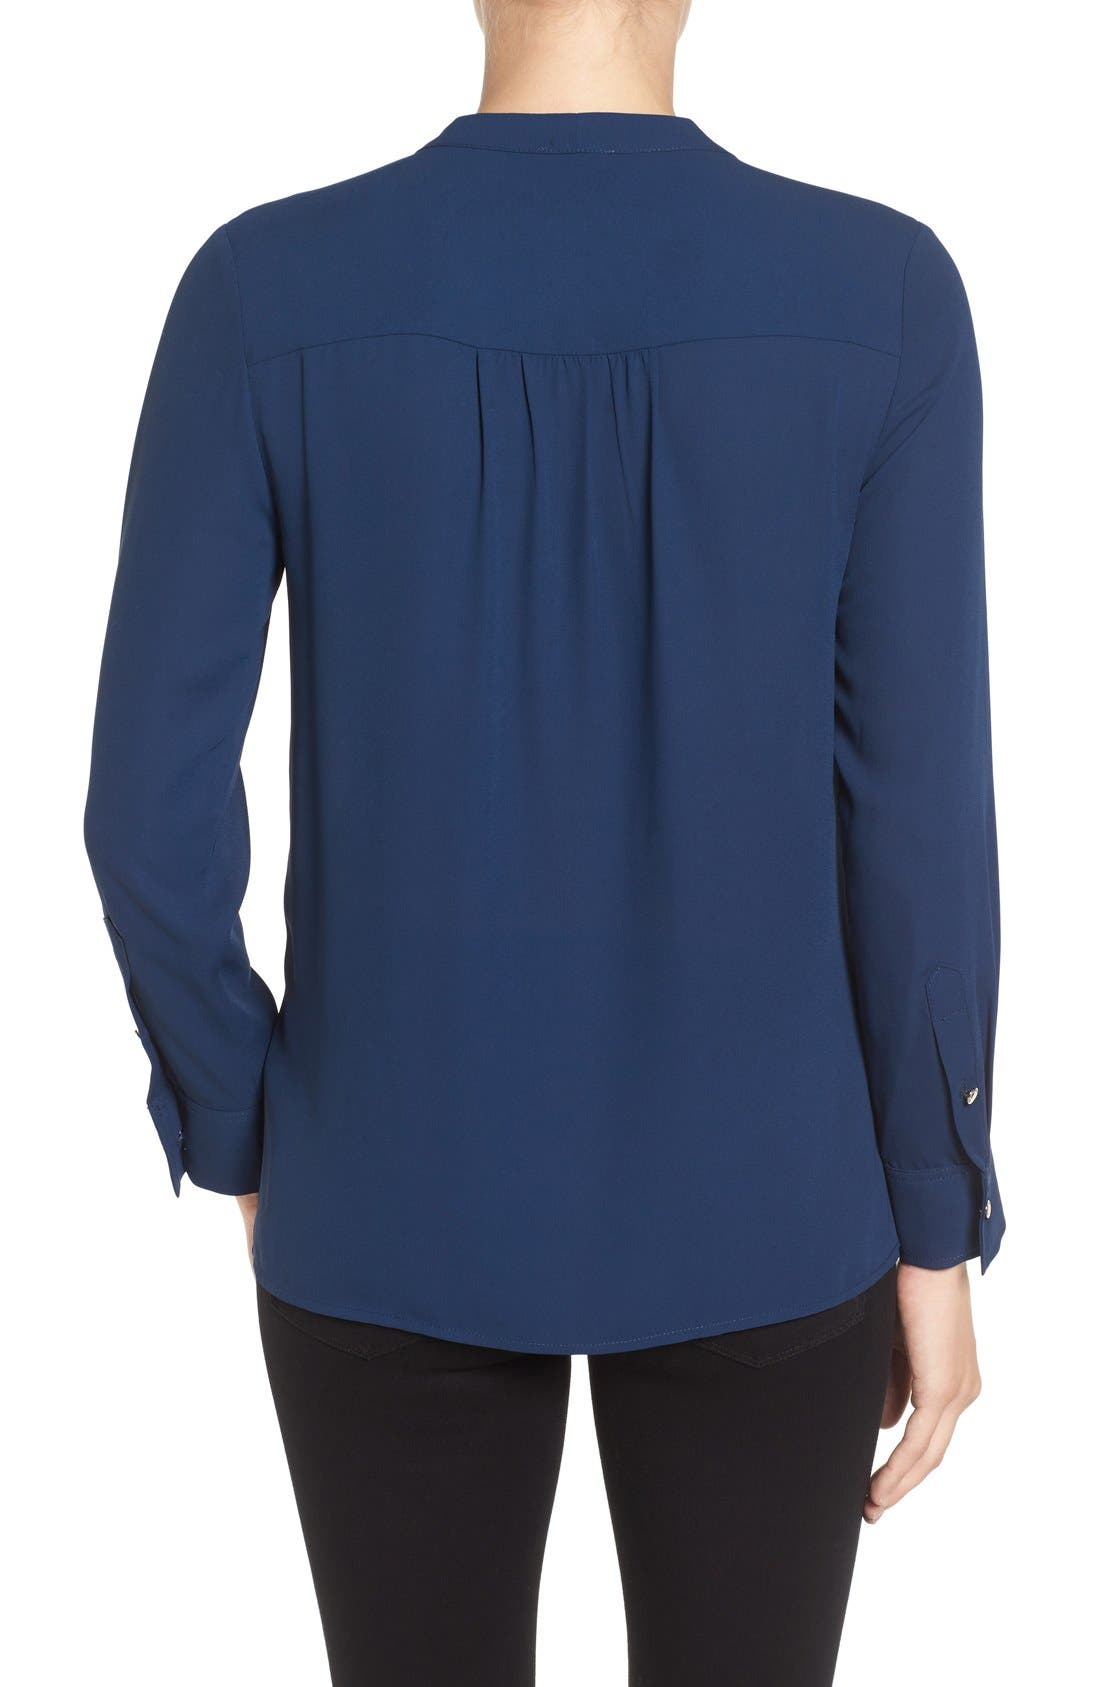 Alternate Image 2  - Vince Camuto Tie Neck Pleat Tuxedo Blouse